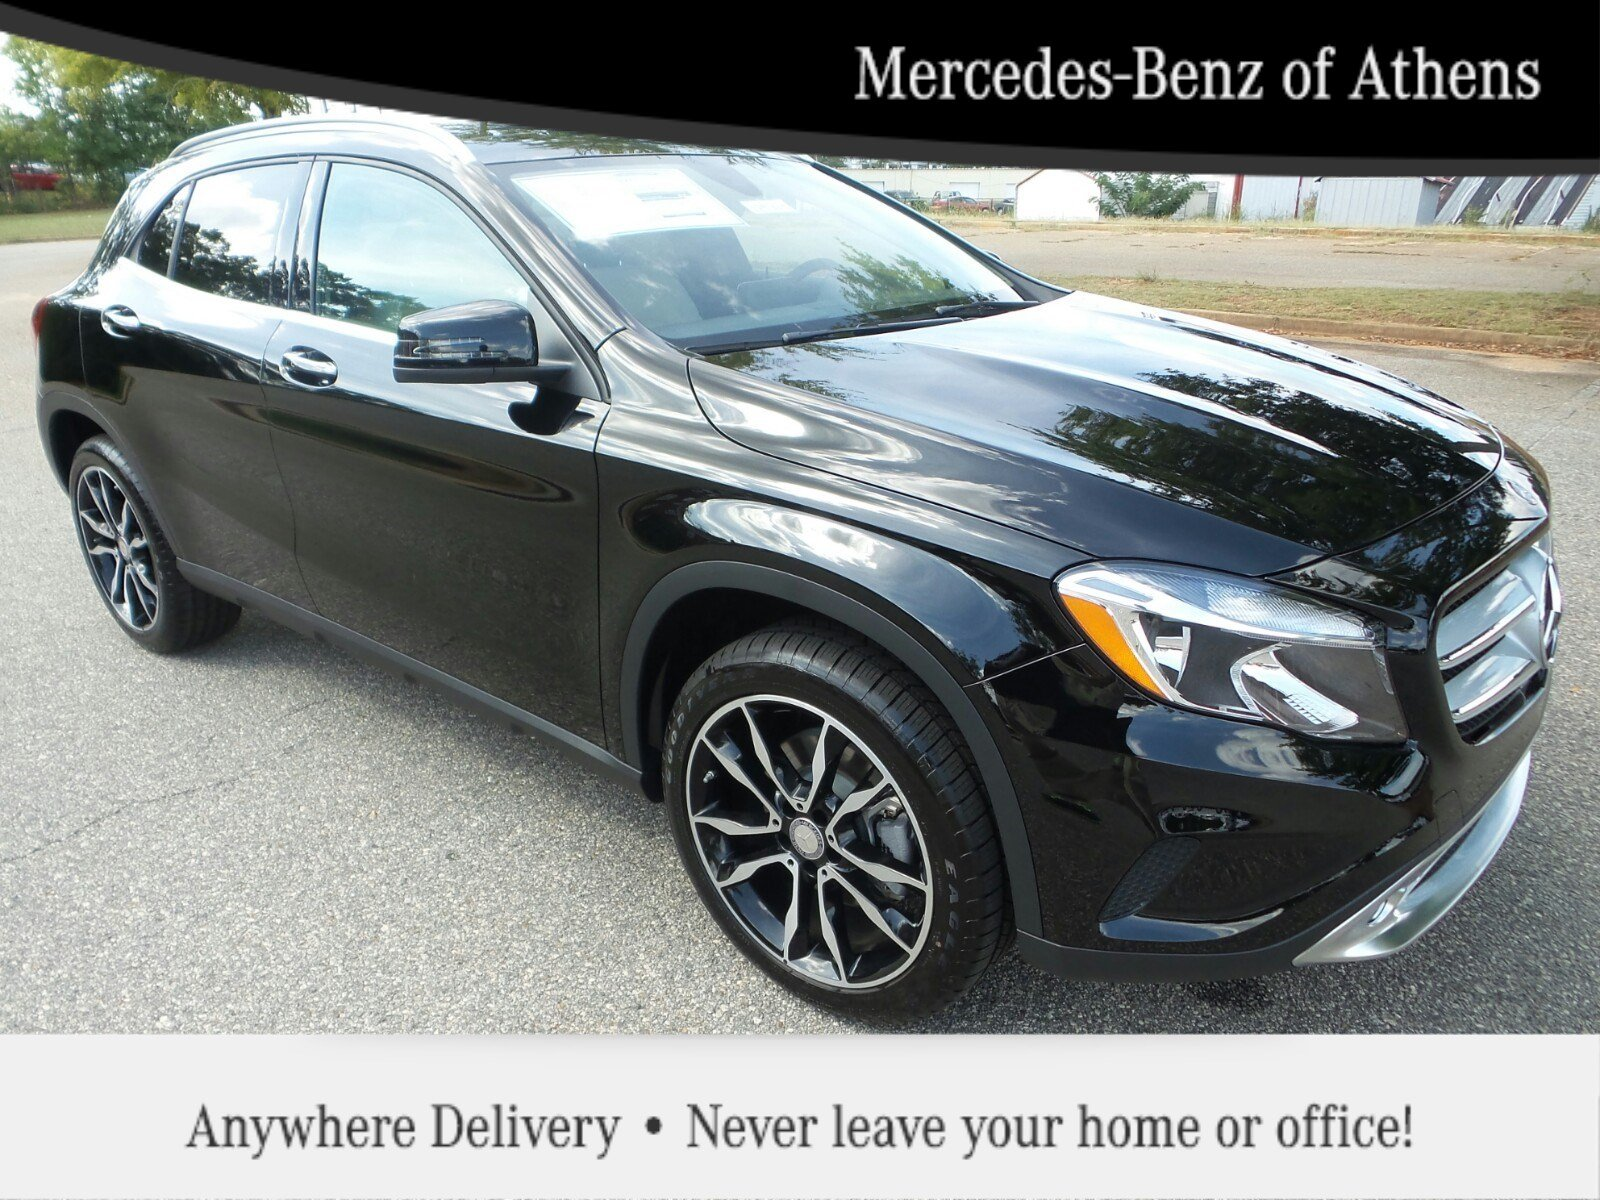 New 2017 mercedes benz gla gla250 suv in athens j295616 for 2017 mercedes benz gla250 suv